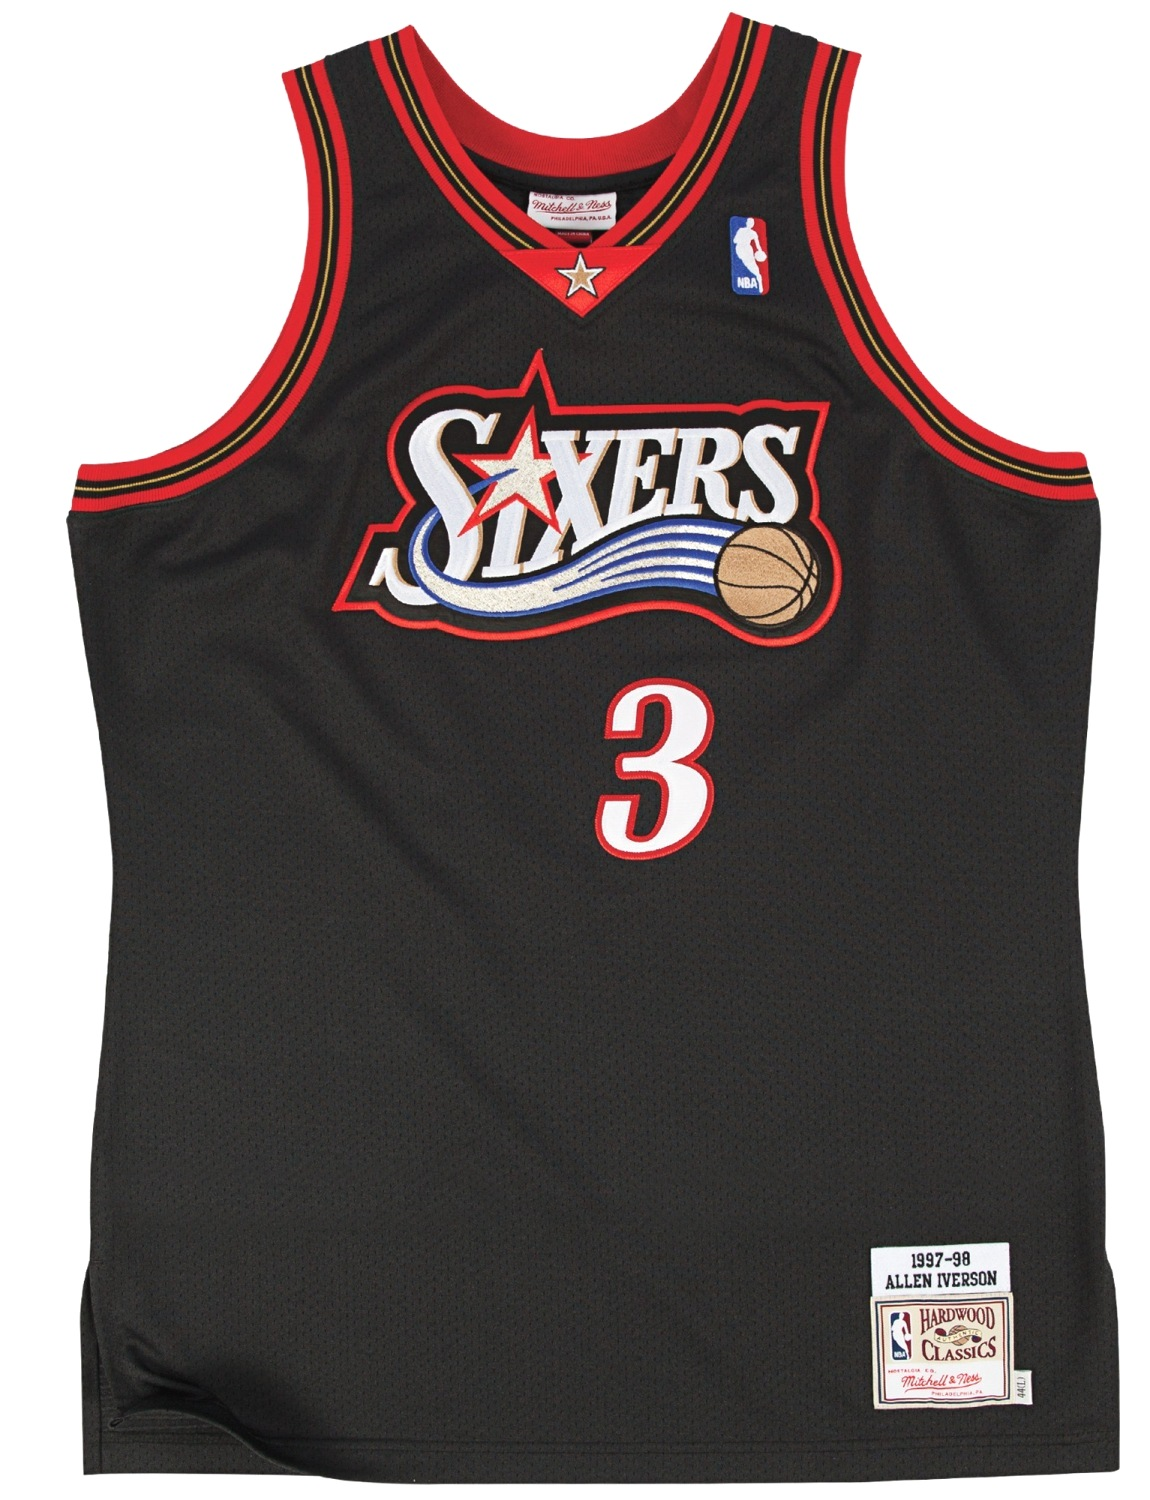 Allen Iverson Philadelphia 76ers Mitchell & Ness Authentic 1997-98 NBA Jersey